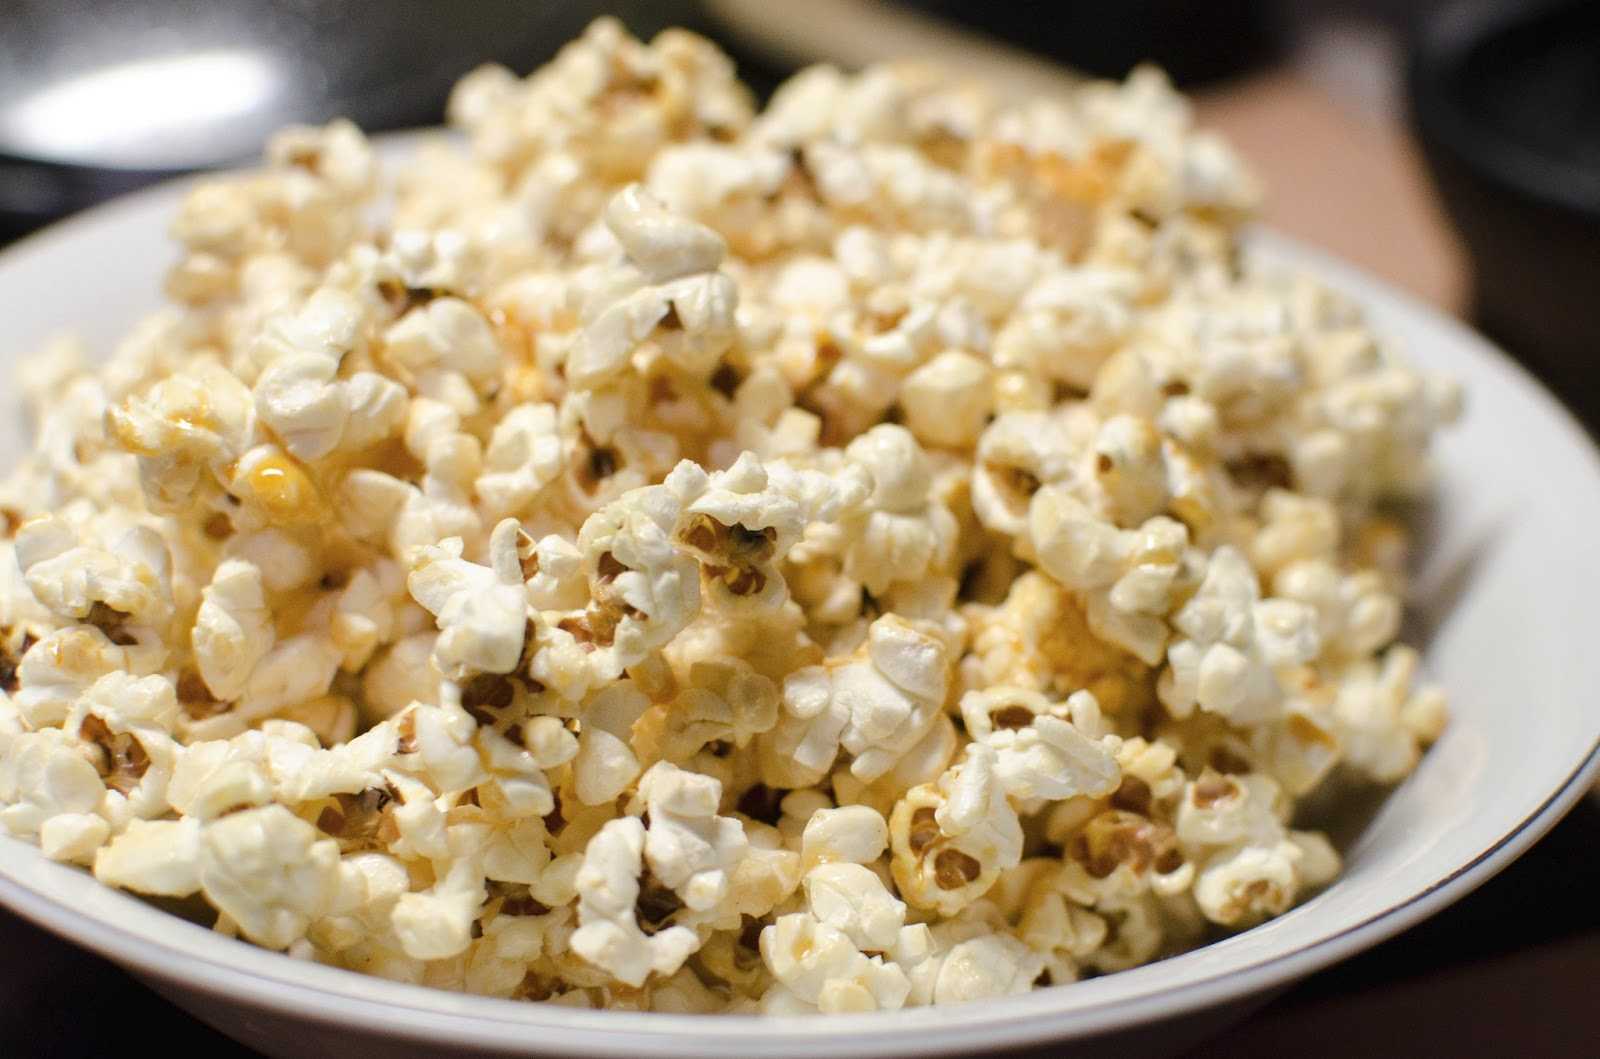 Fabulous Foods!: Homemade Kettle Corn